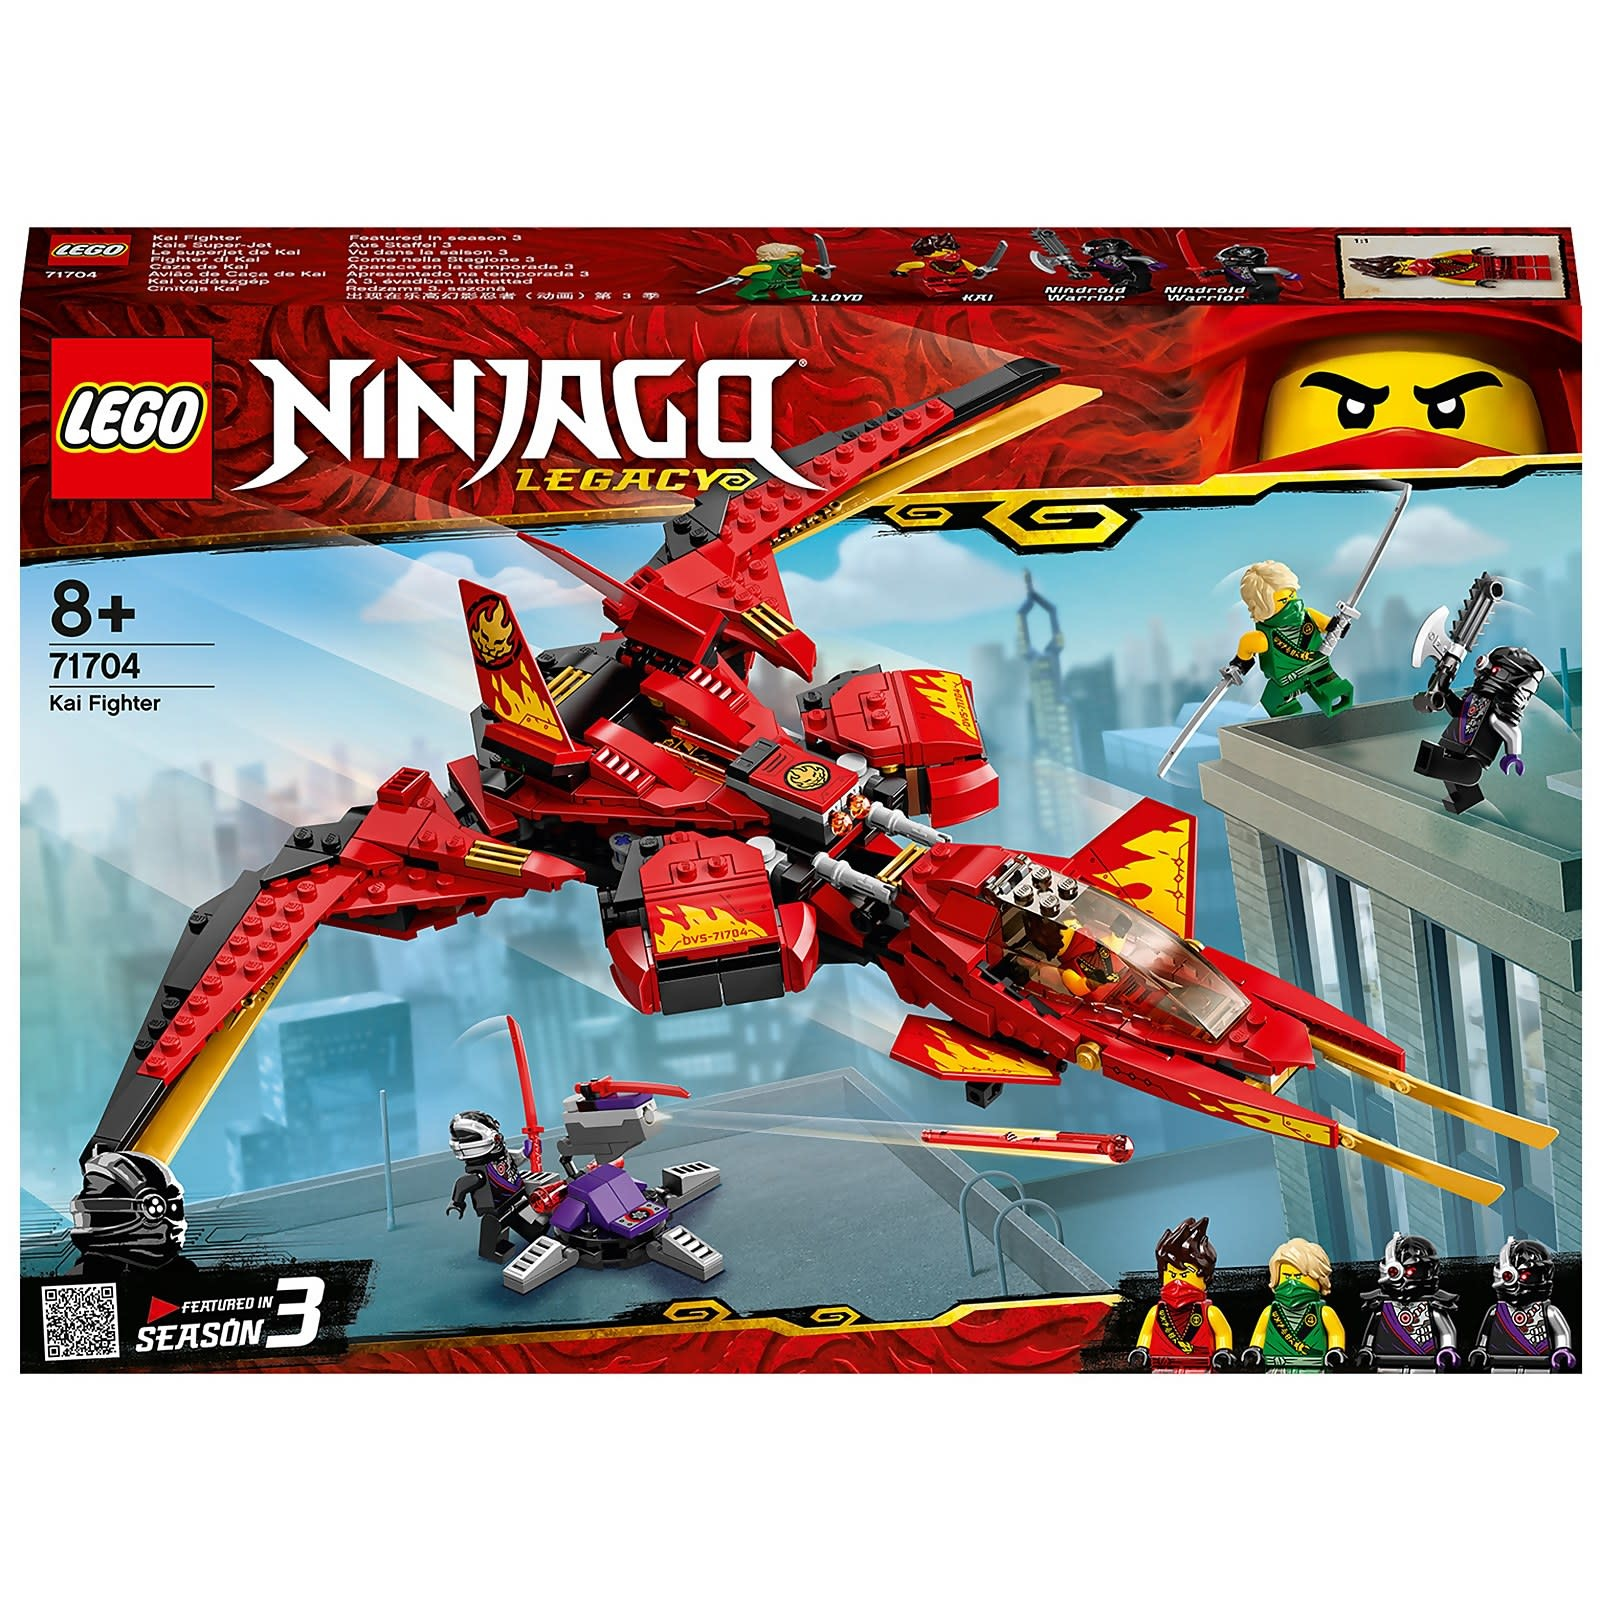 71704 Kai Fighter by LEGO Ninjago